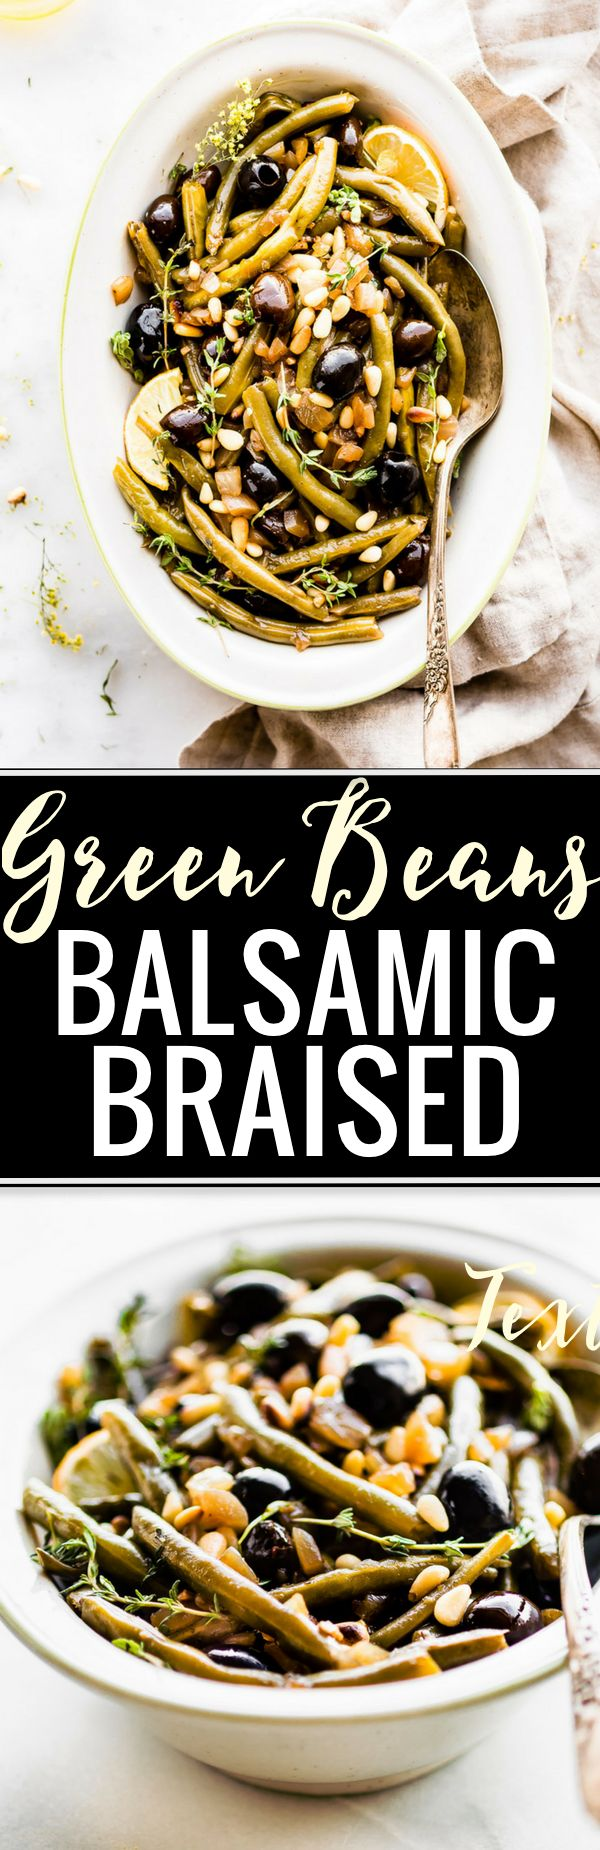 """Take your vegetable side dish to the """"next level"""" with these easy BALSAMIC OLIVE-OIL BRAISED GREEN BEANS! Made with fresh green beans, thyme, balsamic vinegar, olive-oil, black olives, onion & toasted pine nuts. Paleo, vegan friendly. Delicious! www.cottercrunch.com"""